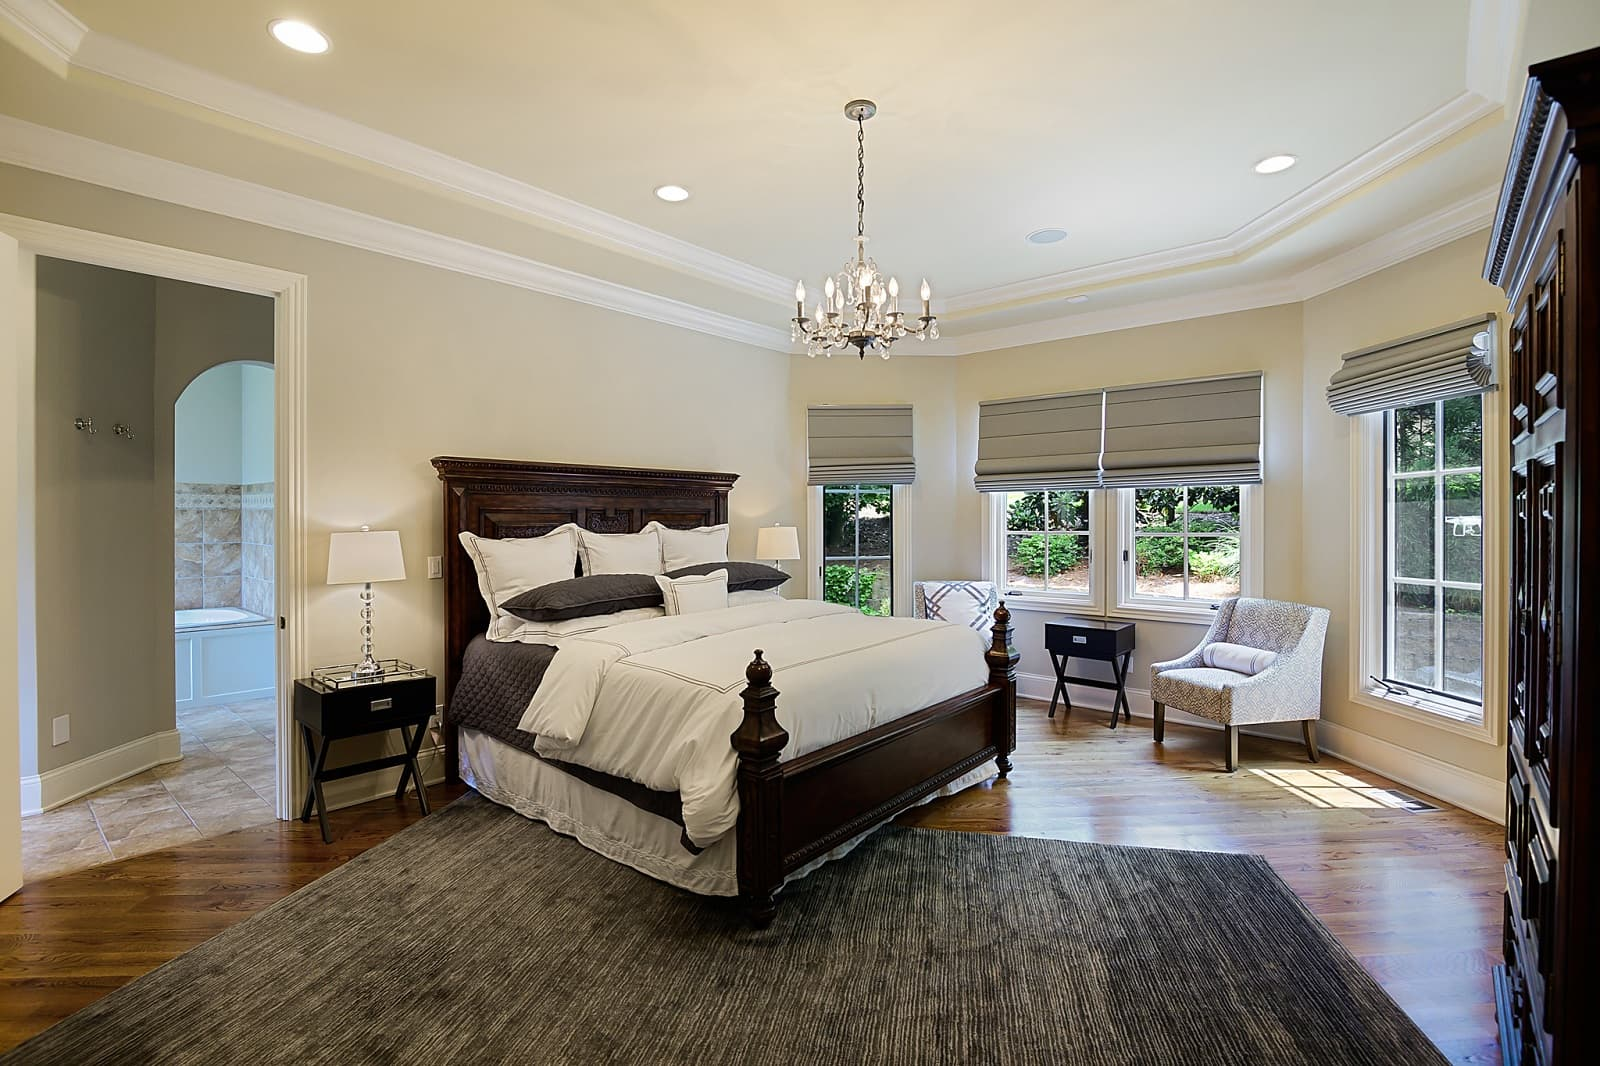 Real Estate Photography in Brentwood - TN - USA - Bedroom View